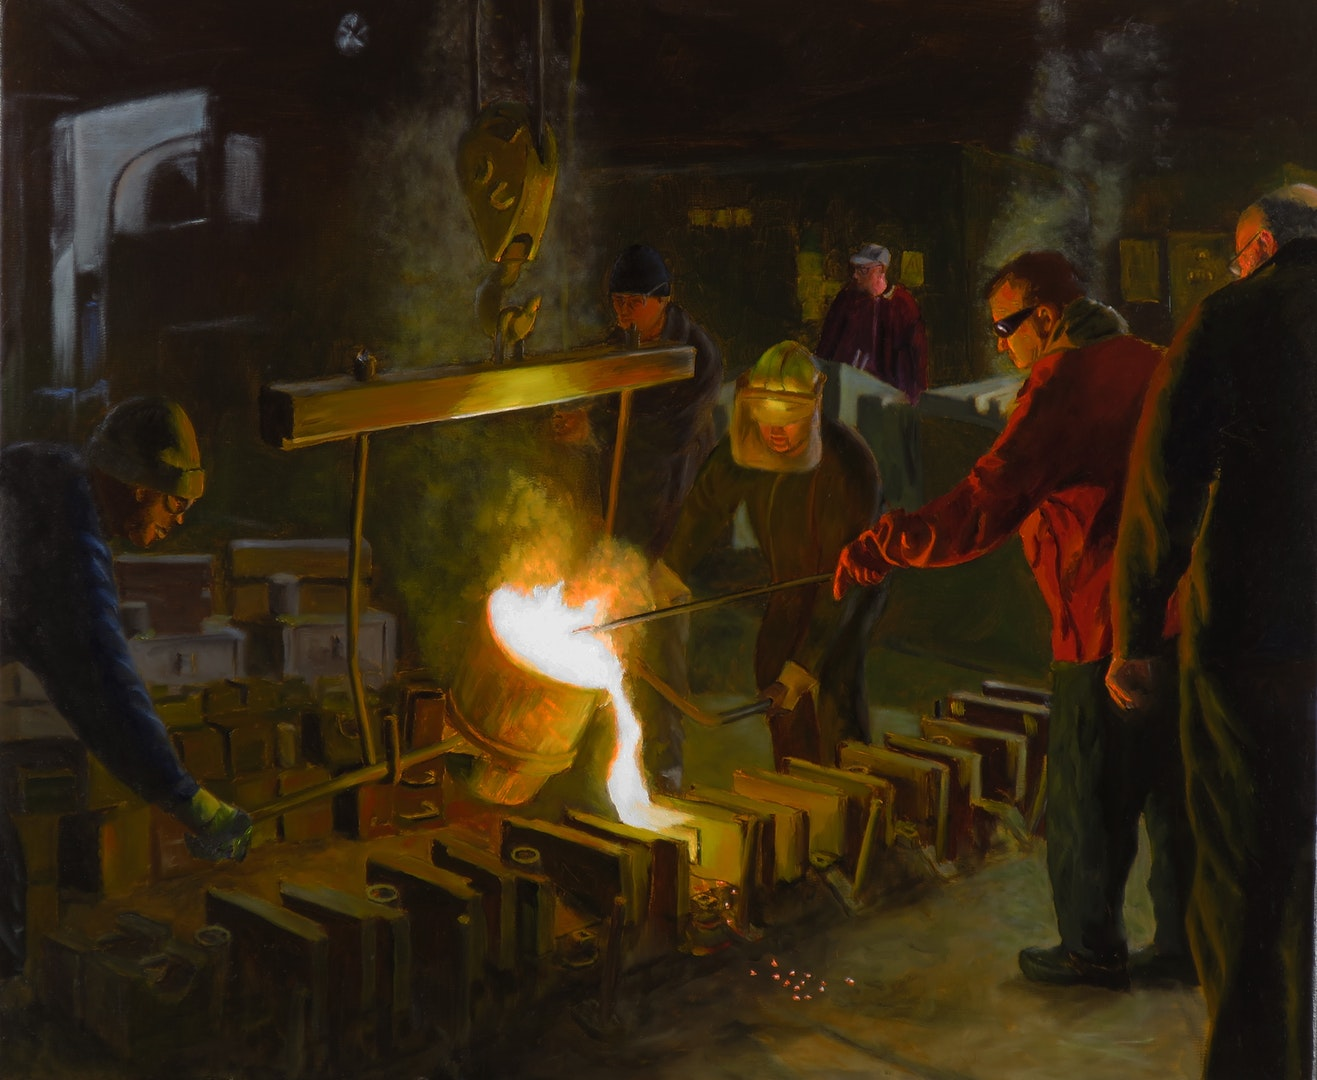 Terry Kent  Casting Steel  Oil on linen, 50 x 60 cm